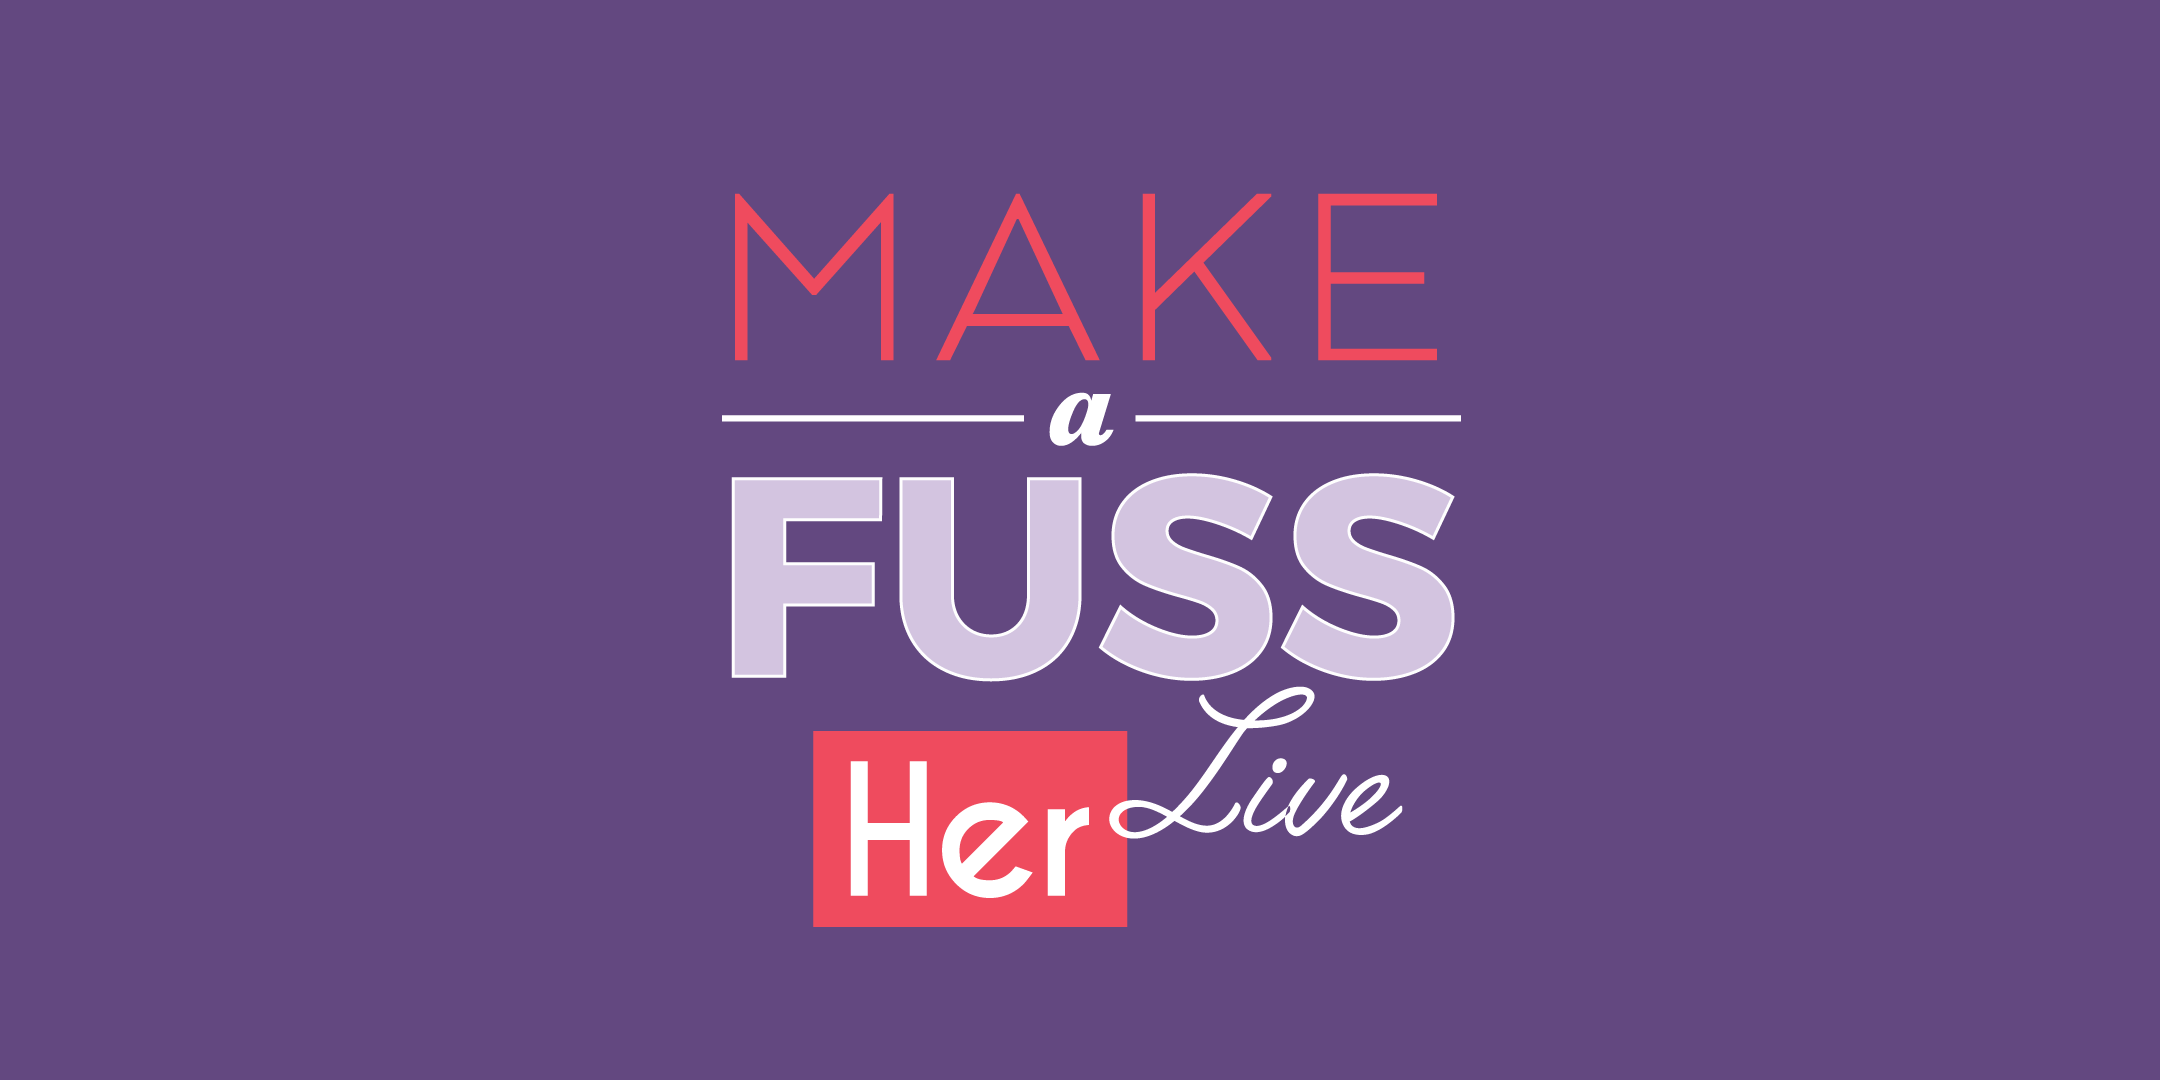 Our networking event Make A Fuss Live is coming back - with some very special guests